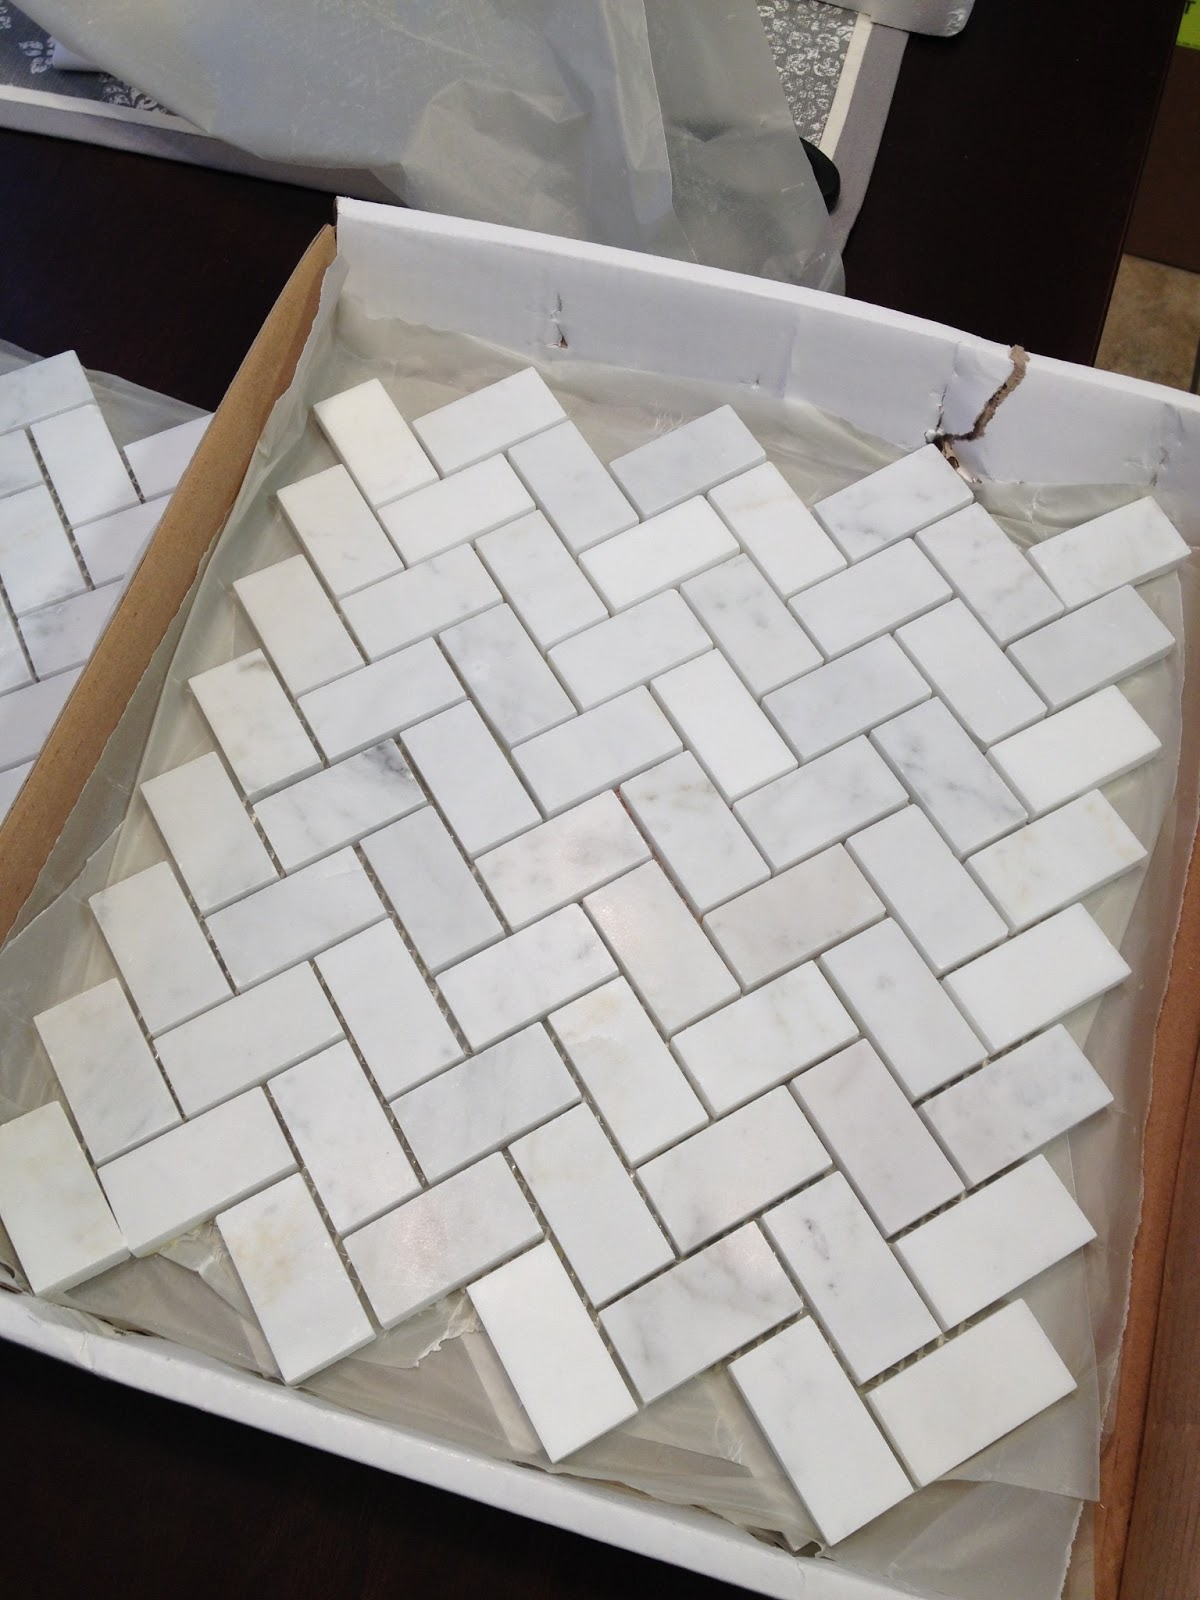 Tiling Our Backsplash Part 1